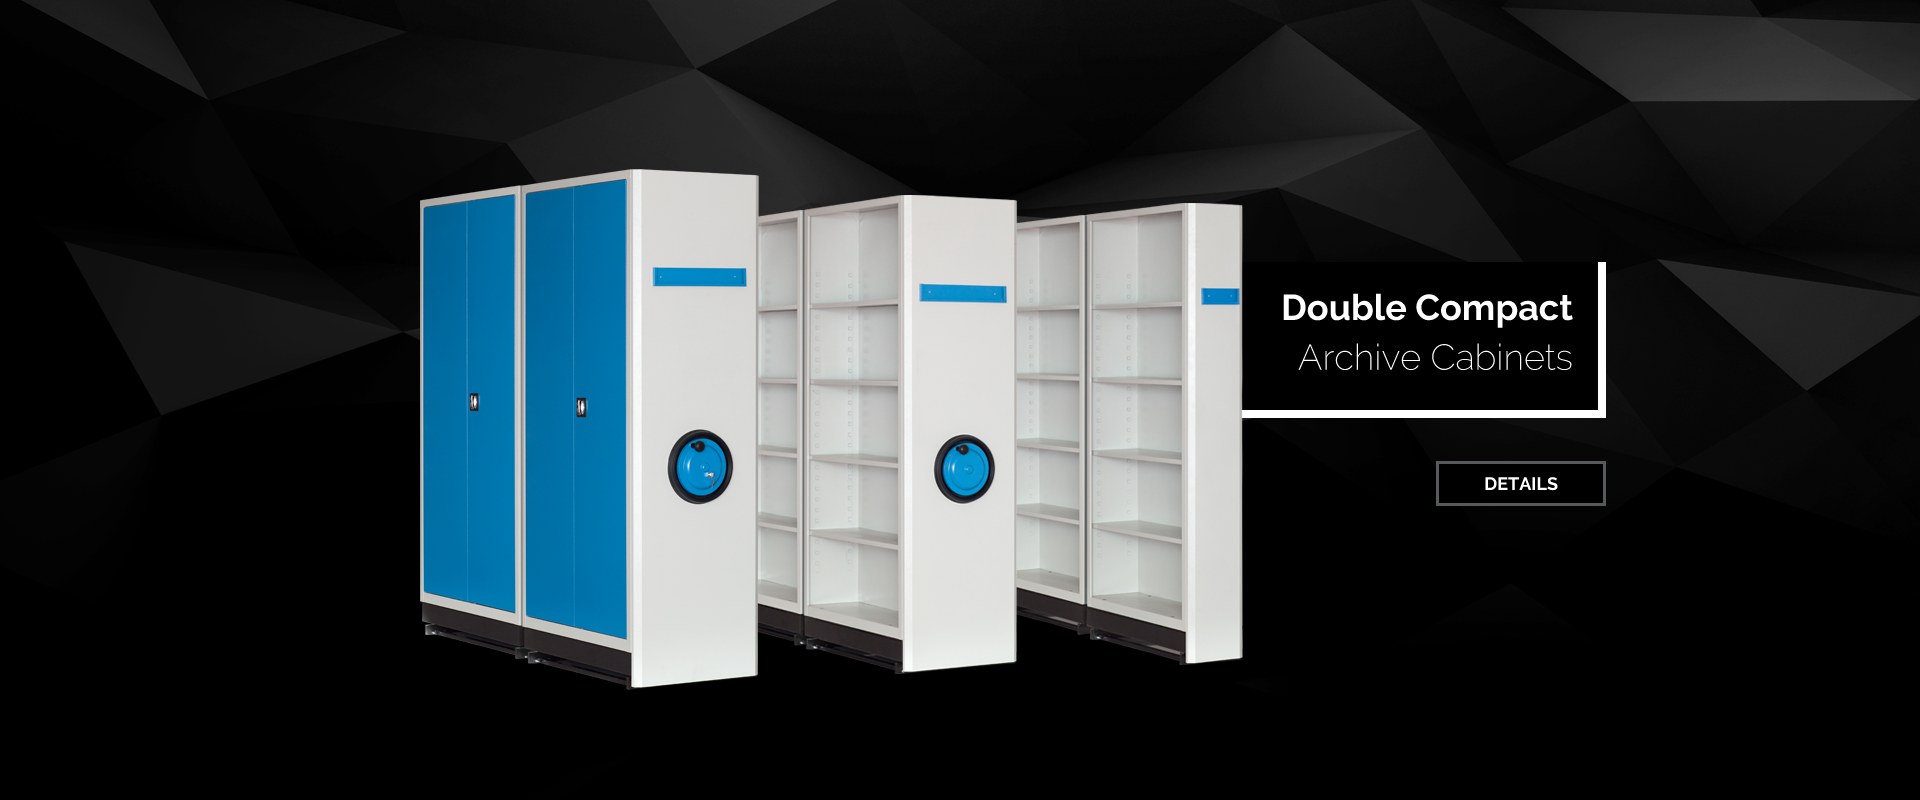 Double Compact Archive Cabinets